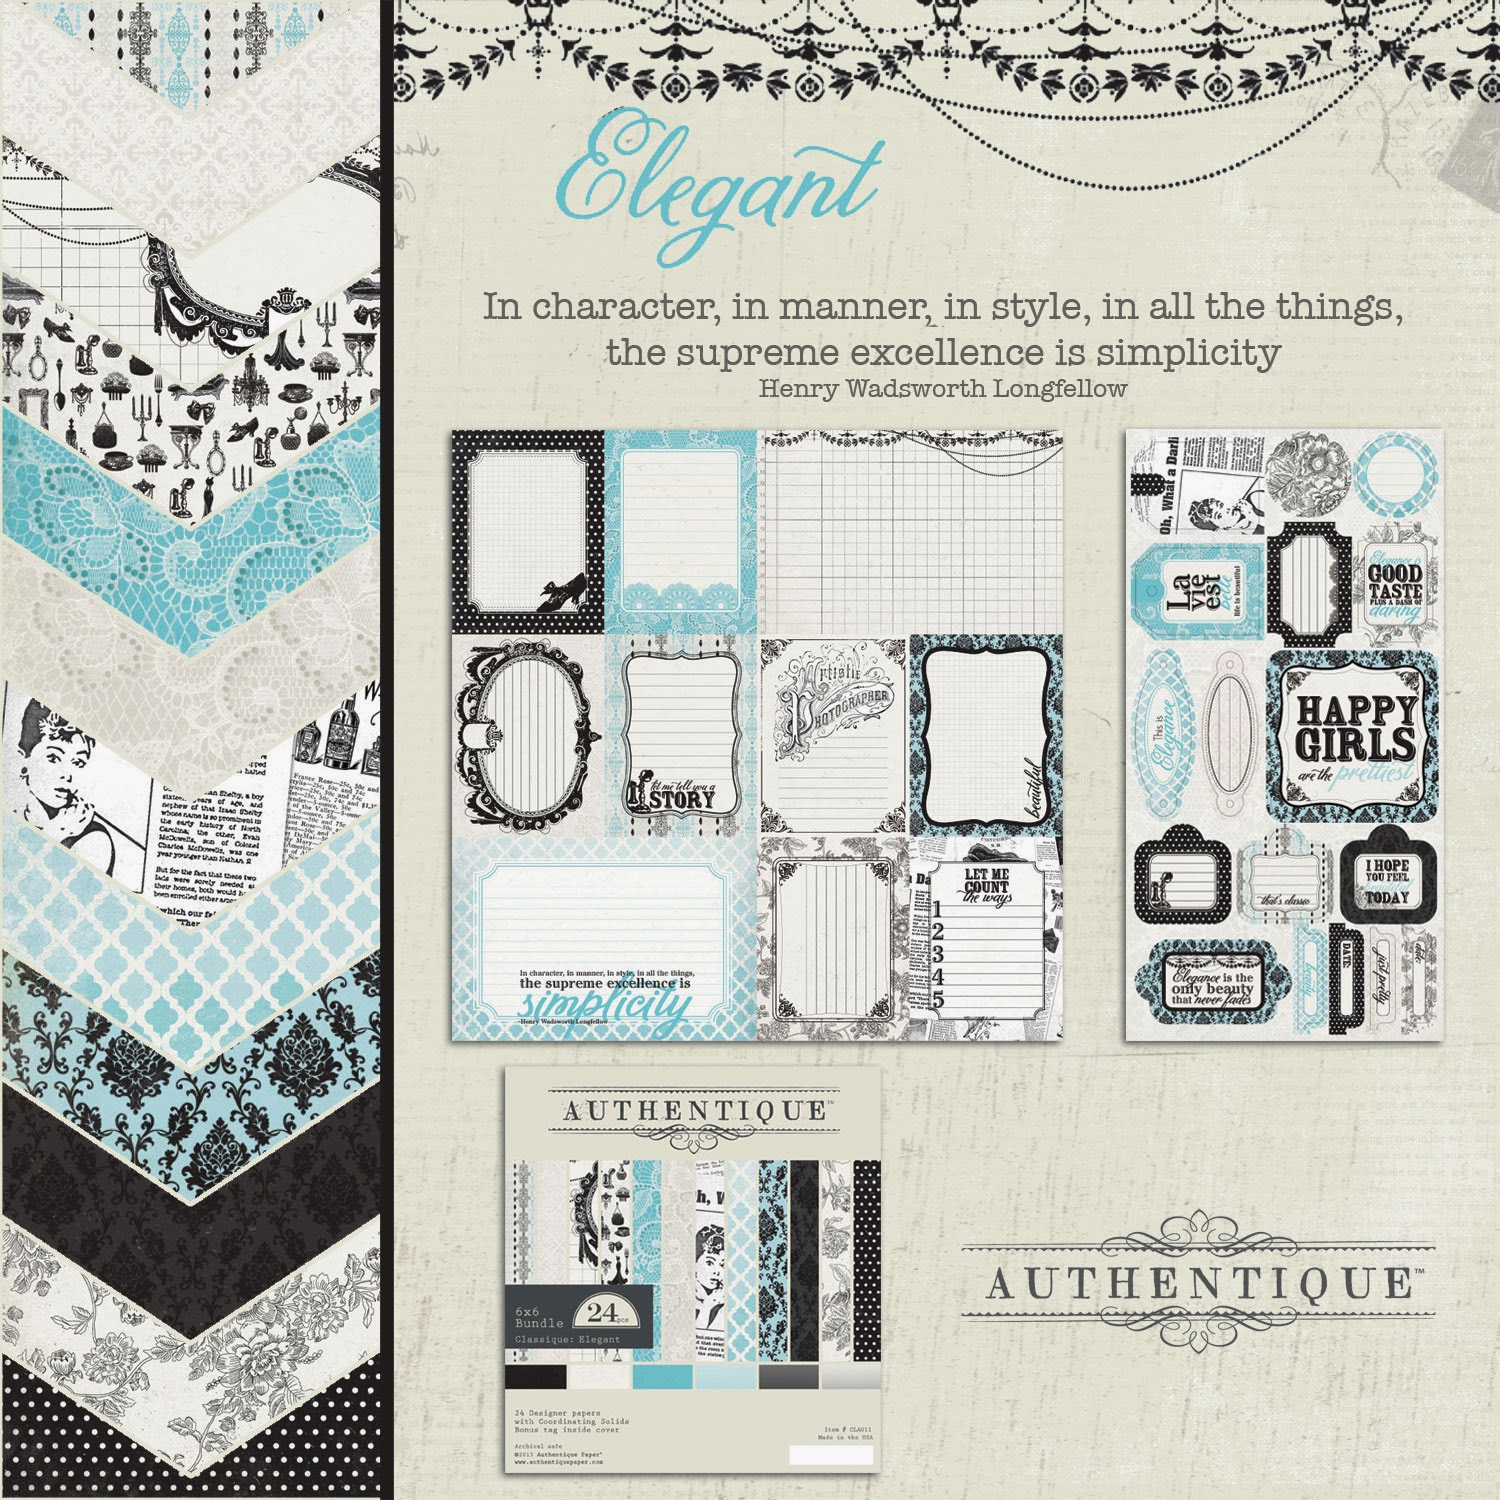 2 sheets Foundation One Authentique Anchored 12x12 Scrapbook Paper